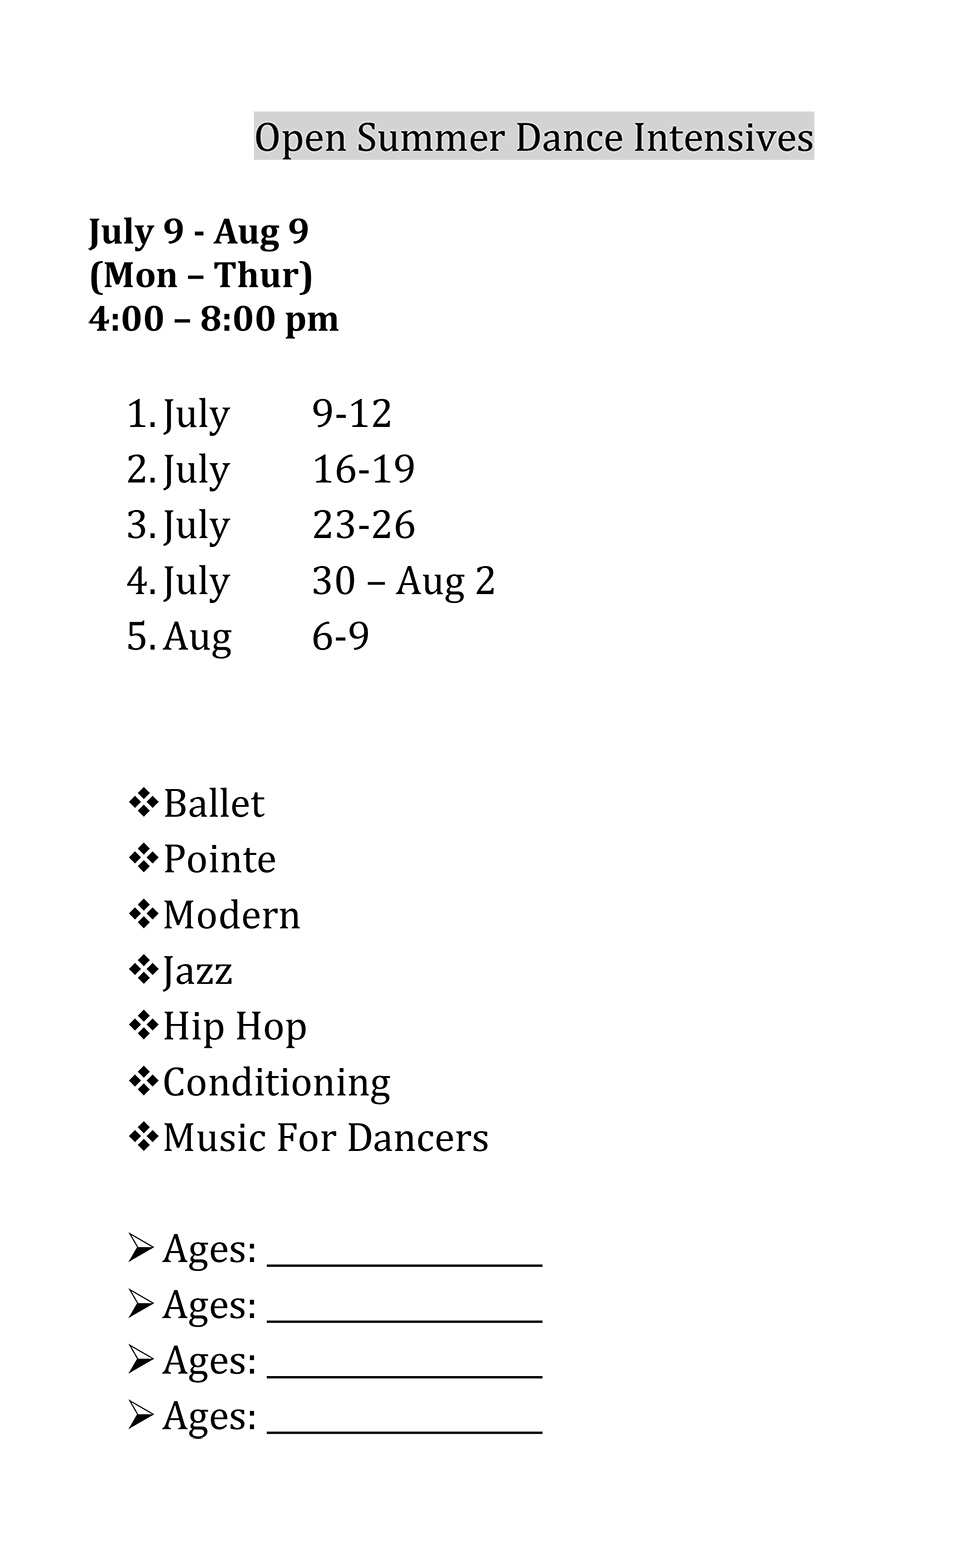 Summer-Dance-Intensives-Dates-2018.jpg